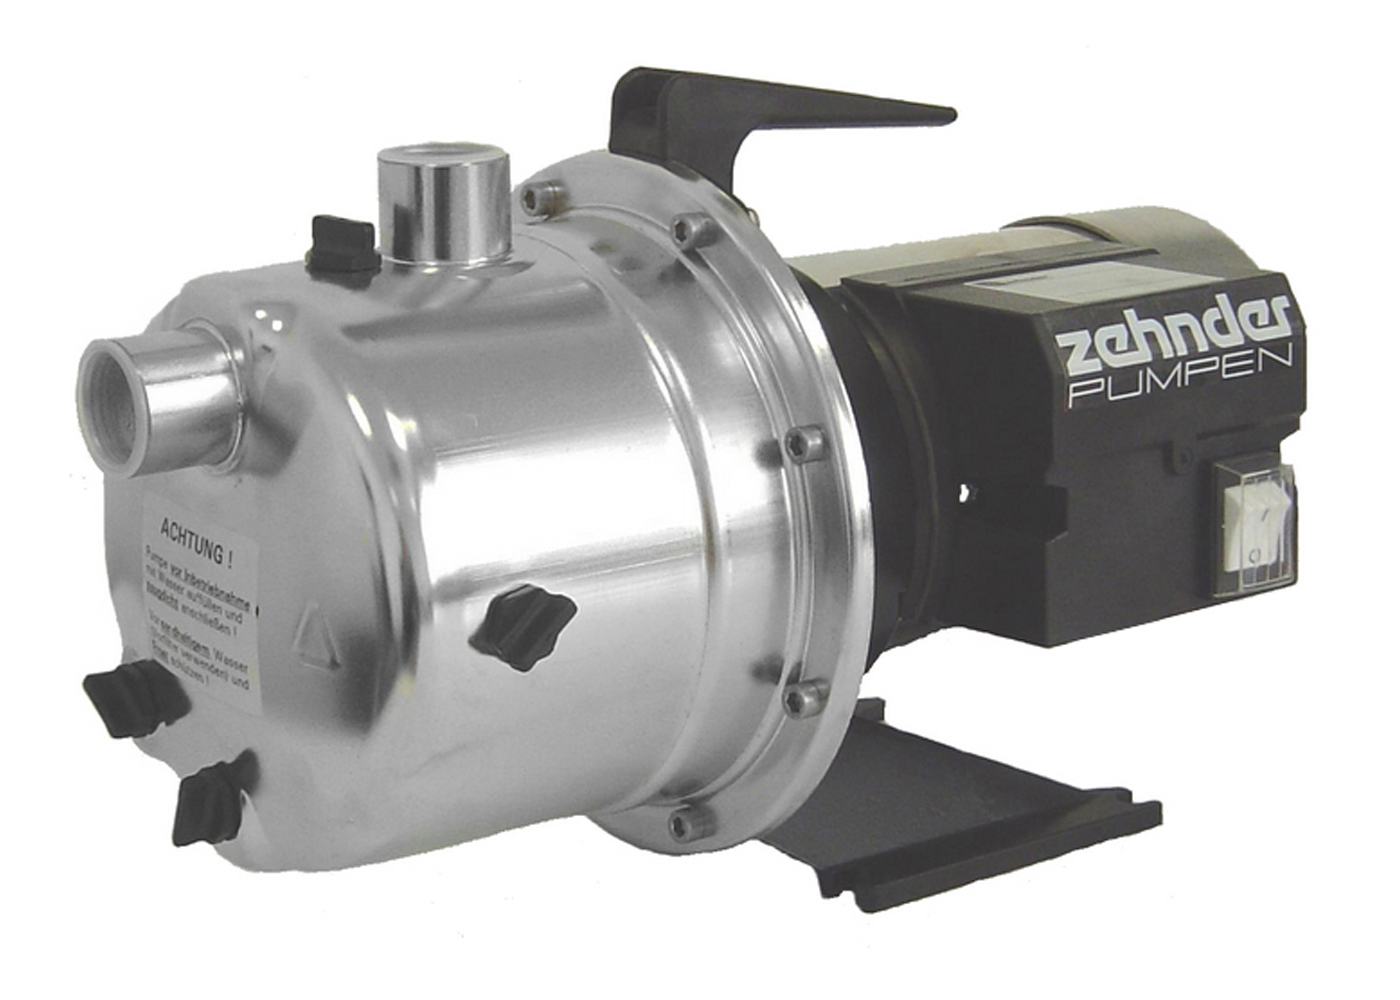 Single-stage jet pumps